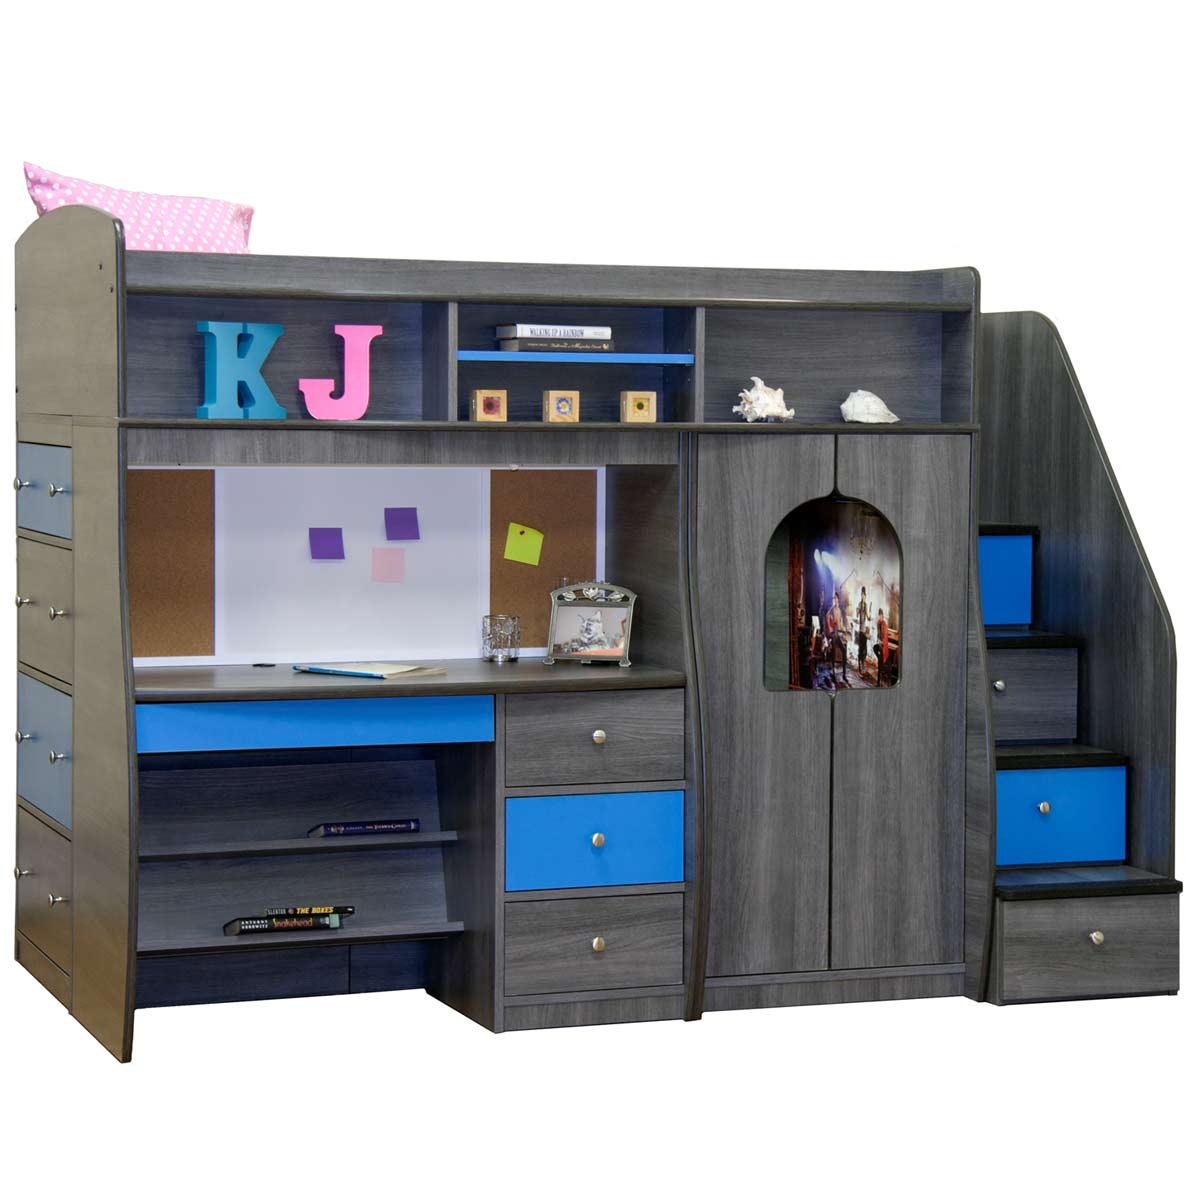 Berg Furniture Play & Study Fun Center Play Study & Storage with